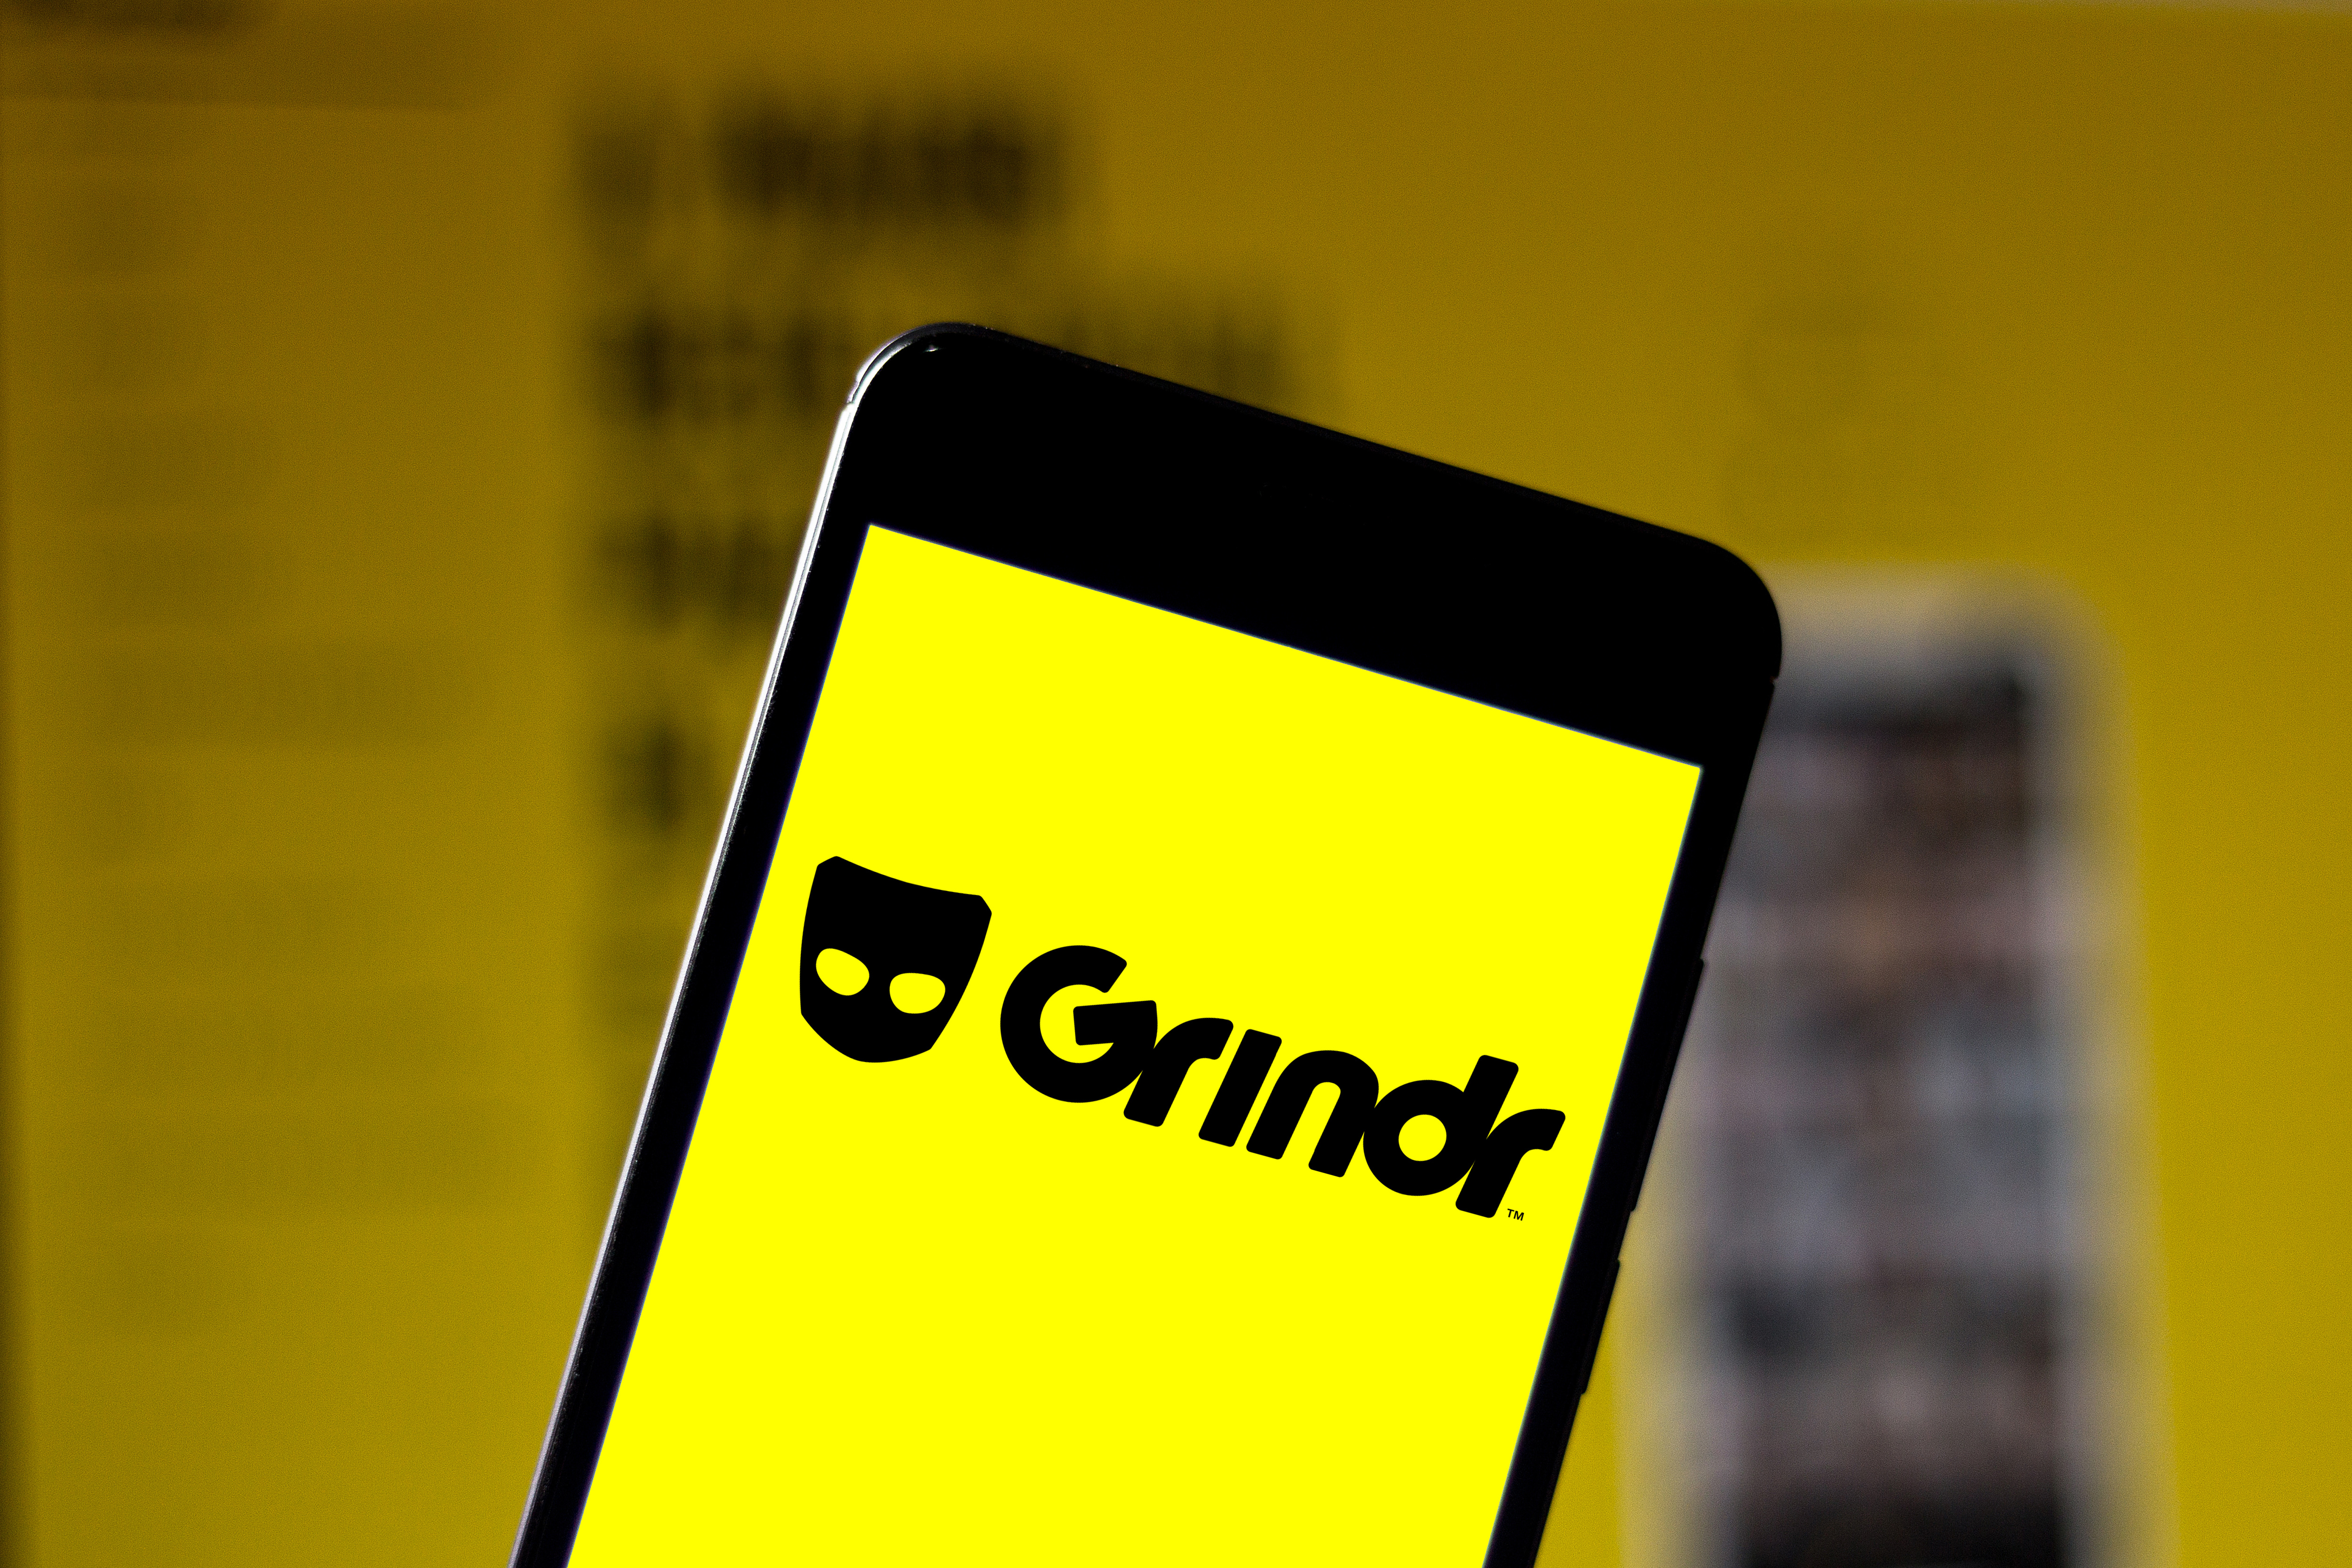 Grindr and Romeo among gay dating apps leaking location data year